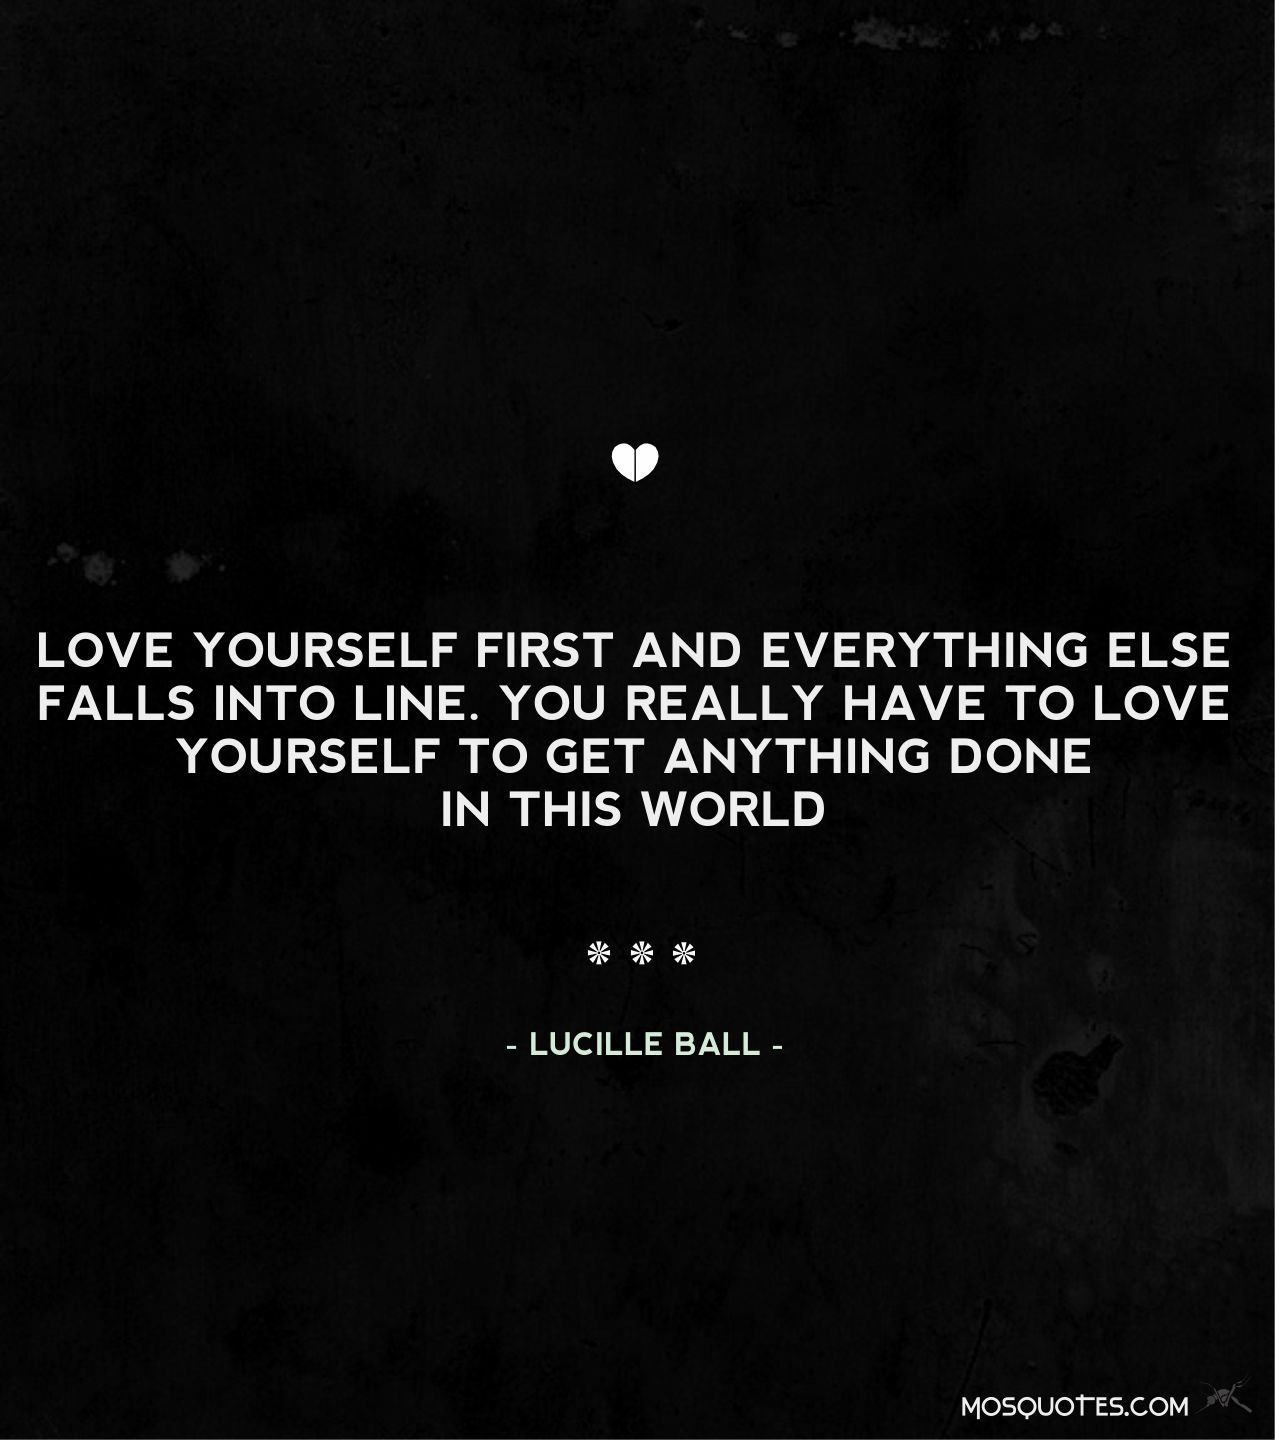 Famous Quotes About Love: Famous Quotes About Love First. QuotesGram